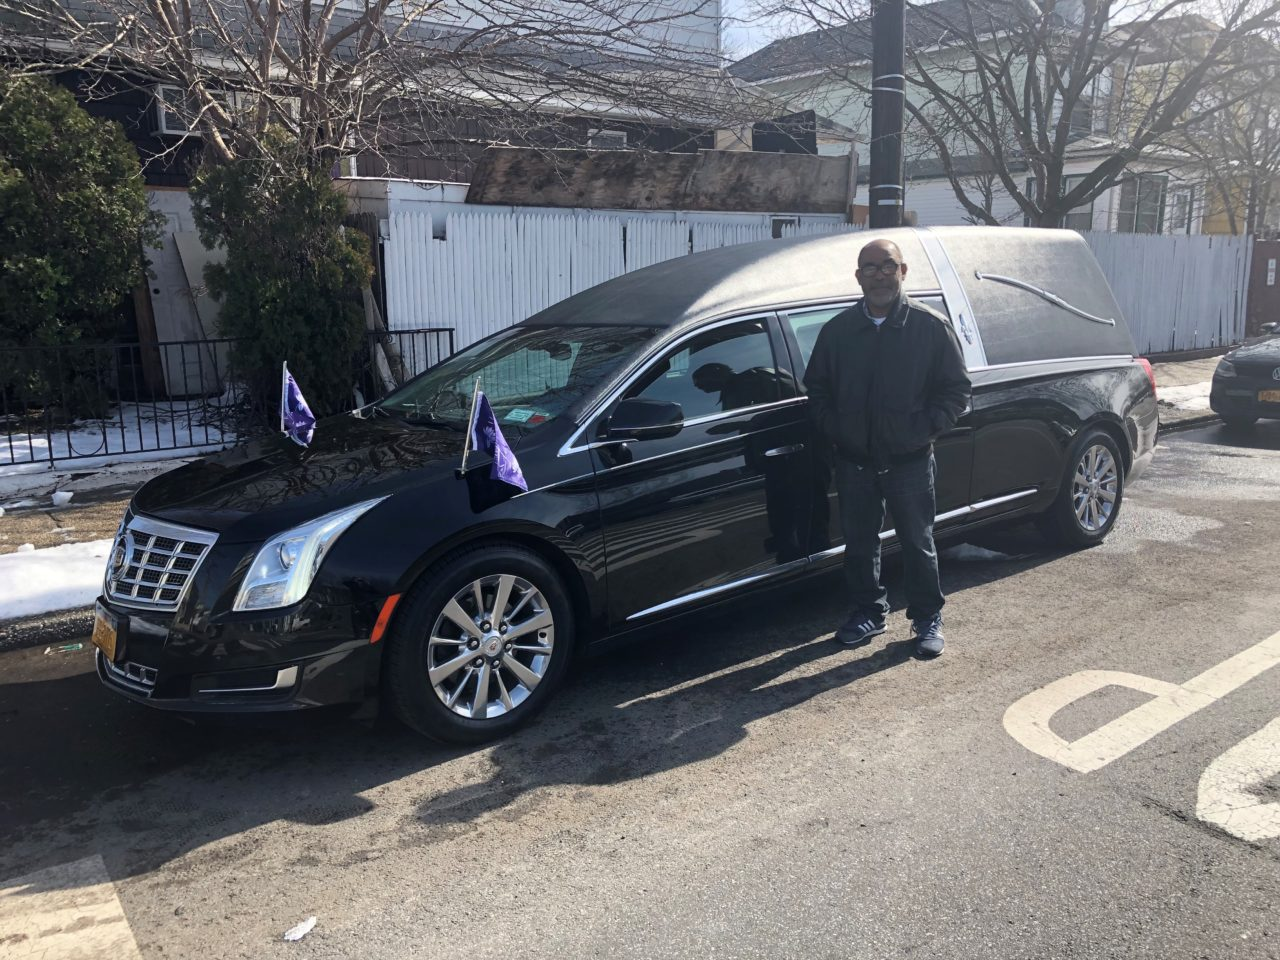 New Delivery: 2013 Cadillac Hearse delivered to Hosten Funeral Service, Inc.